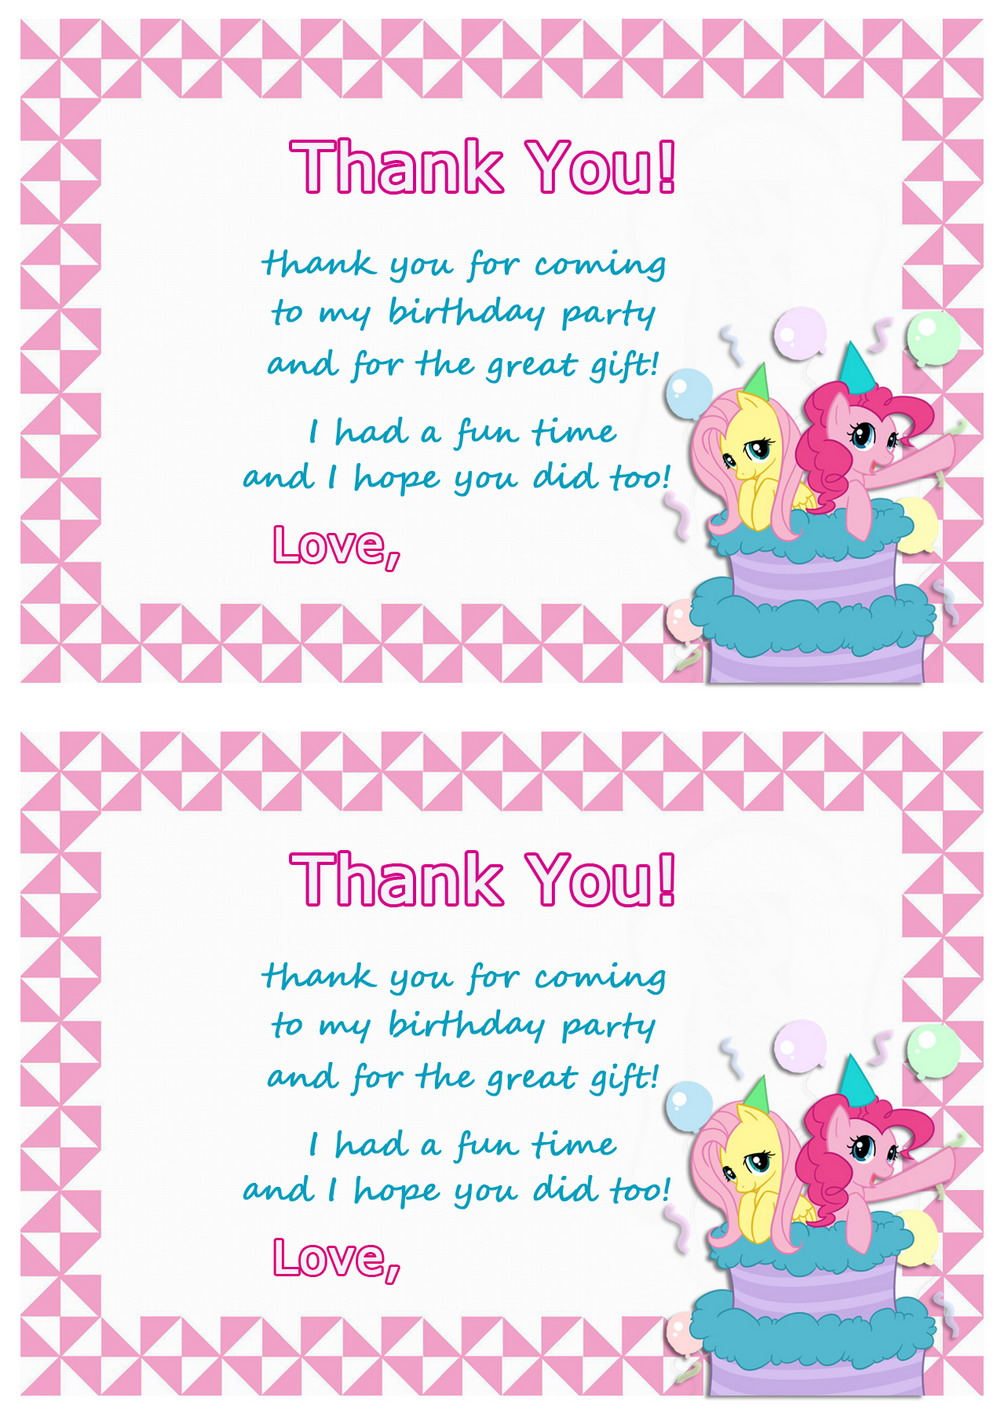 Amazing S Birthday Thank You Cards Personalised My Little Pony Thank You Cards Birthday Printable Birthday Thank You Cards cards Birthday Thank You Cards